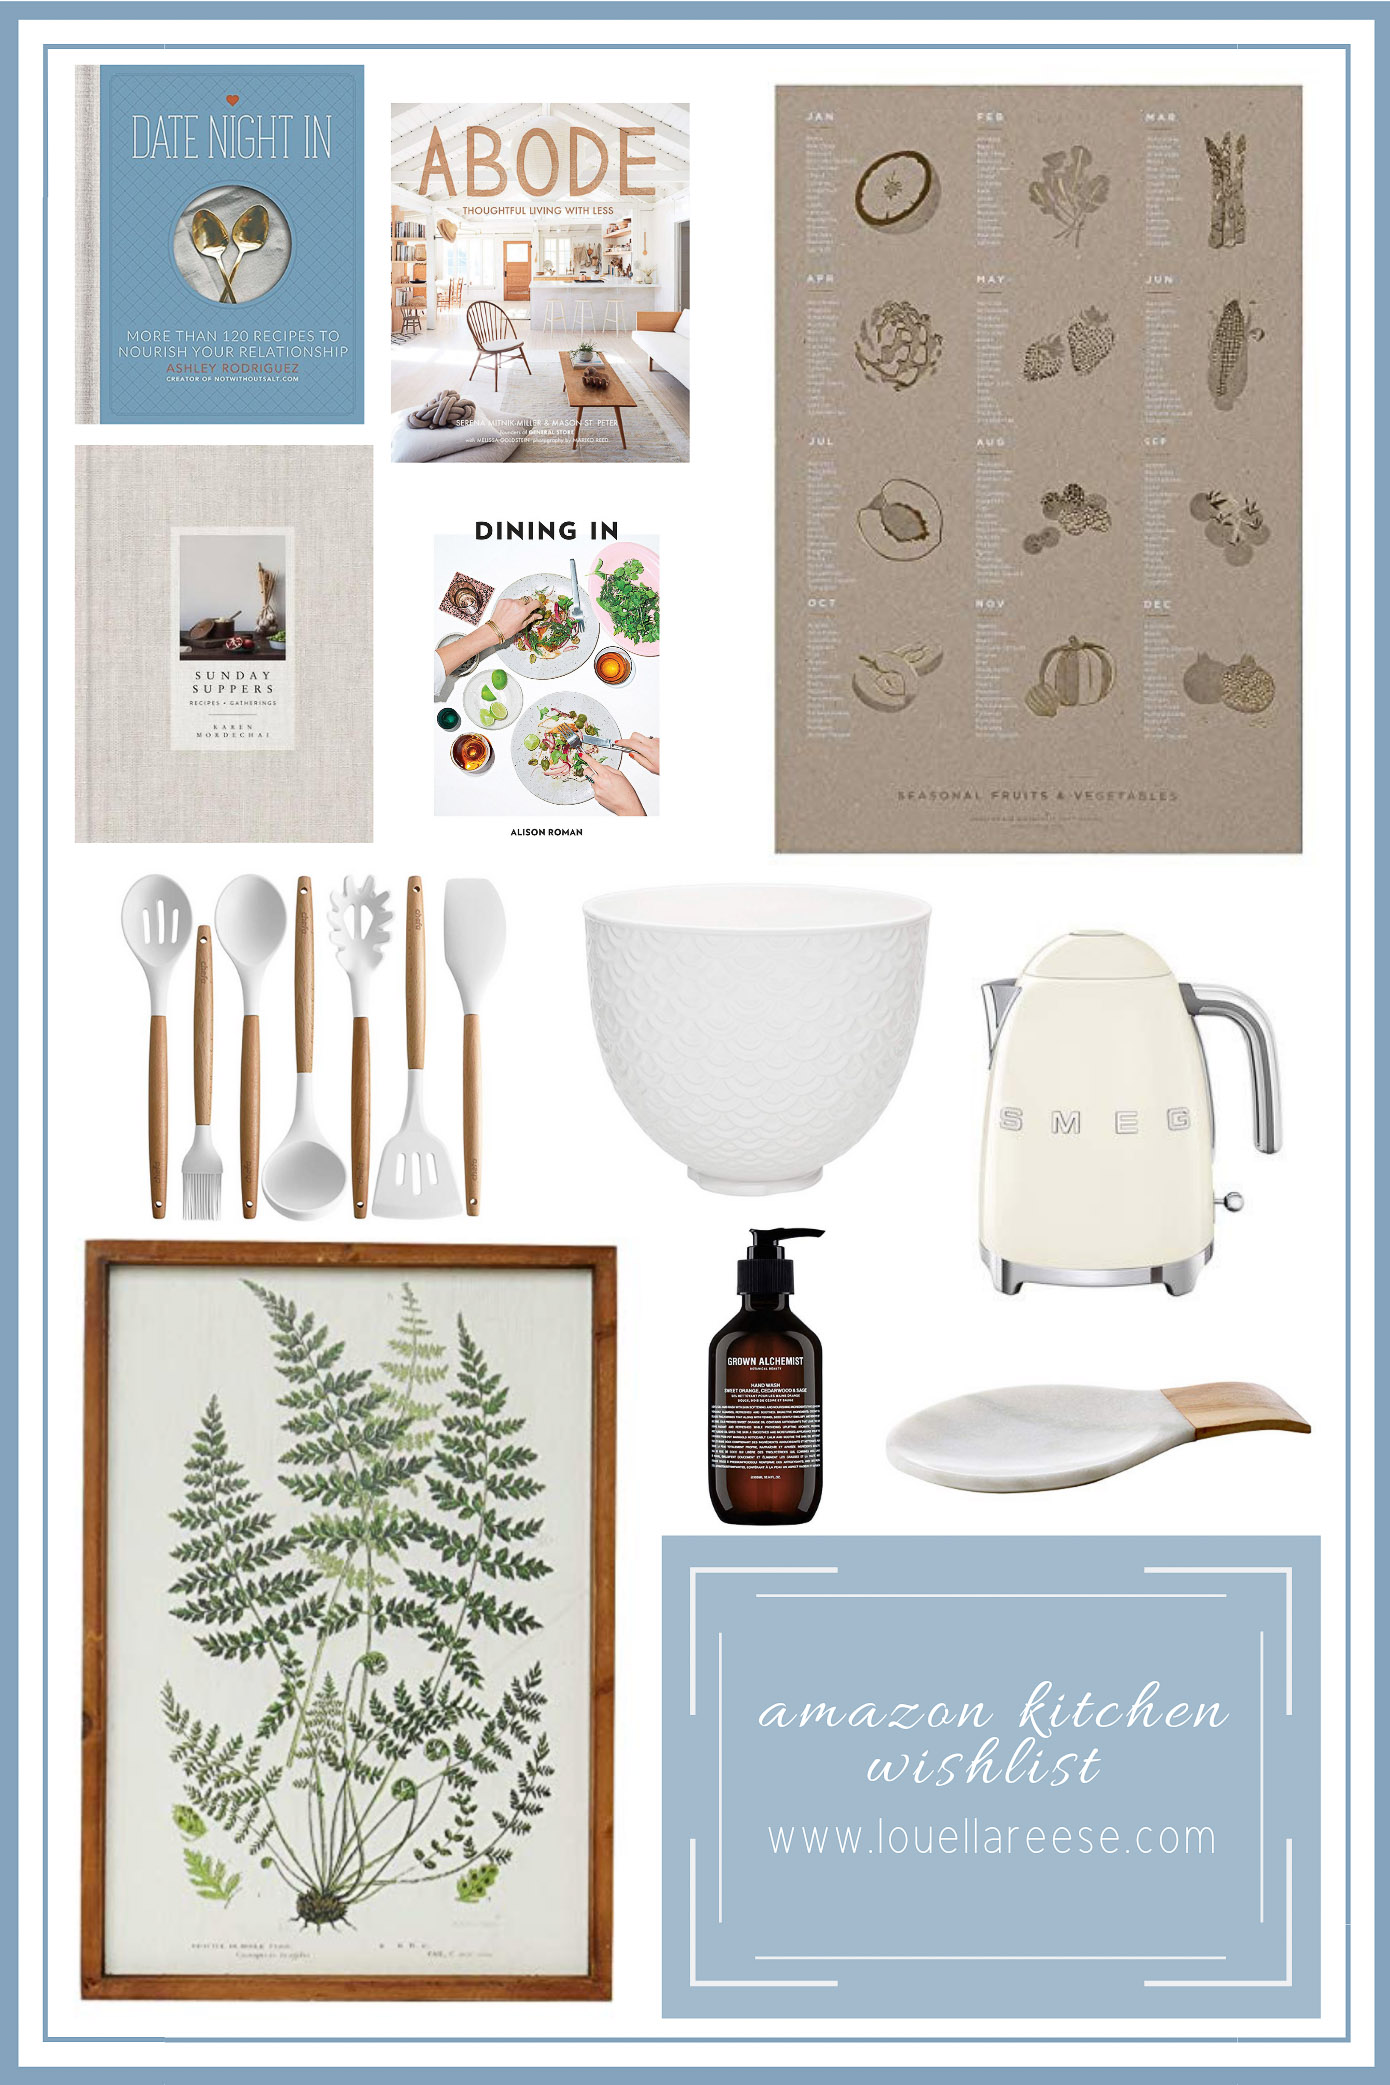 Amazon Kitchen Wish List | Amazon Kitchen Decor Finds | Louella Reese